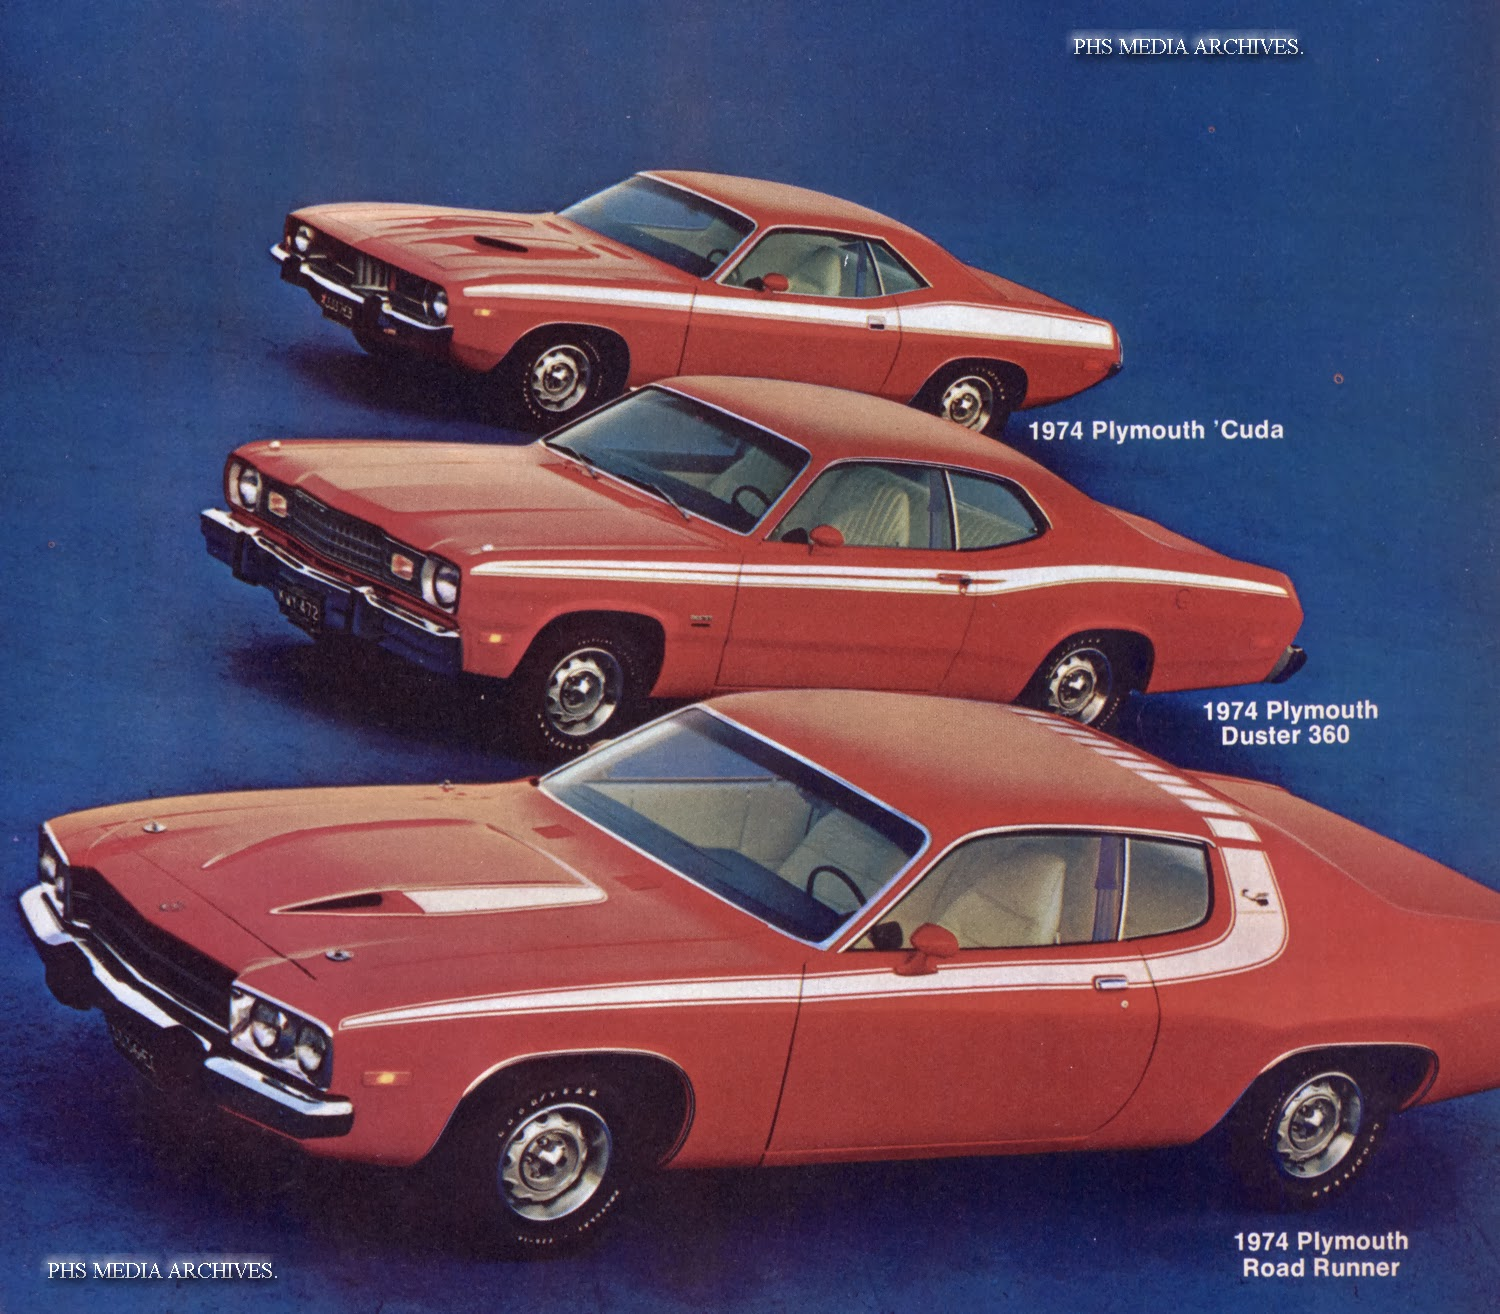 The 1974 Duster 360 was promoted by sandwiching it between the Roadrunner  and 'cuda.